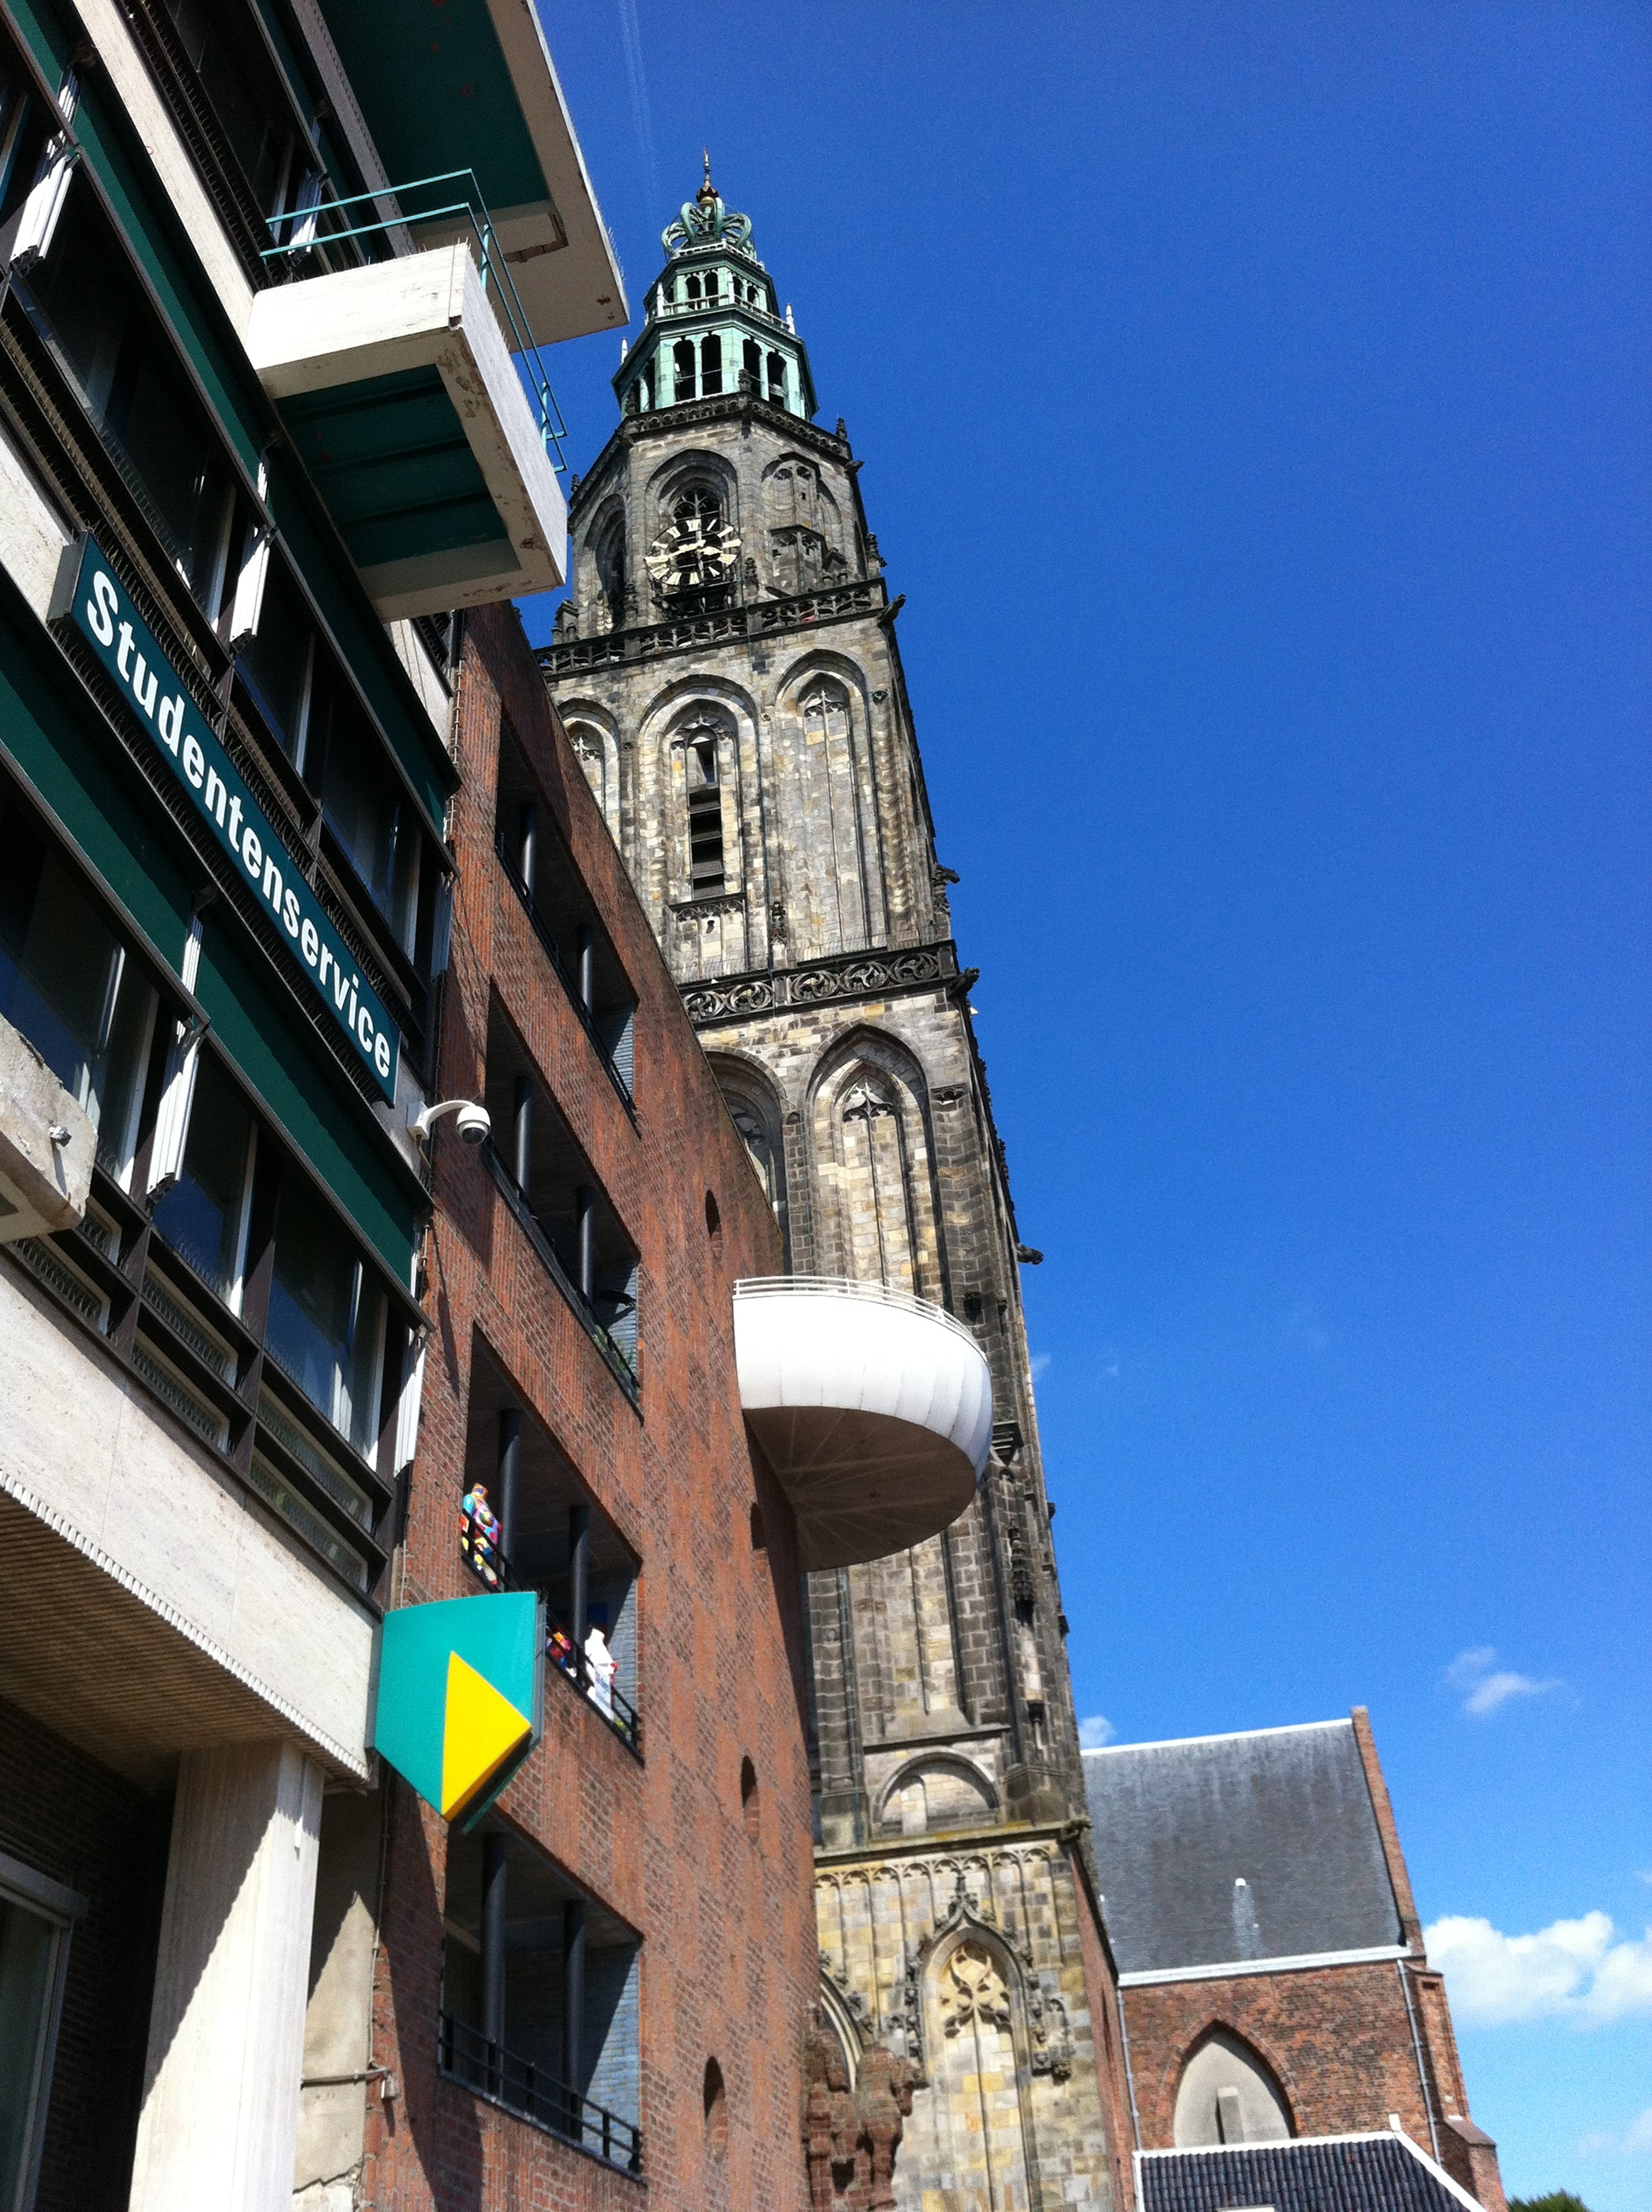 The Martinitoren, a tower in Groningen, NL.